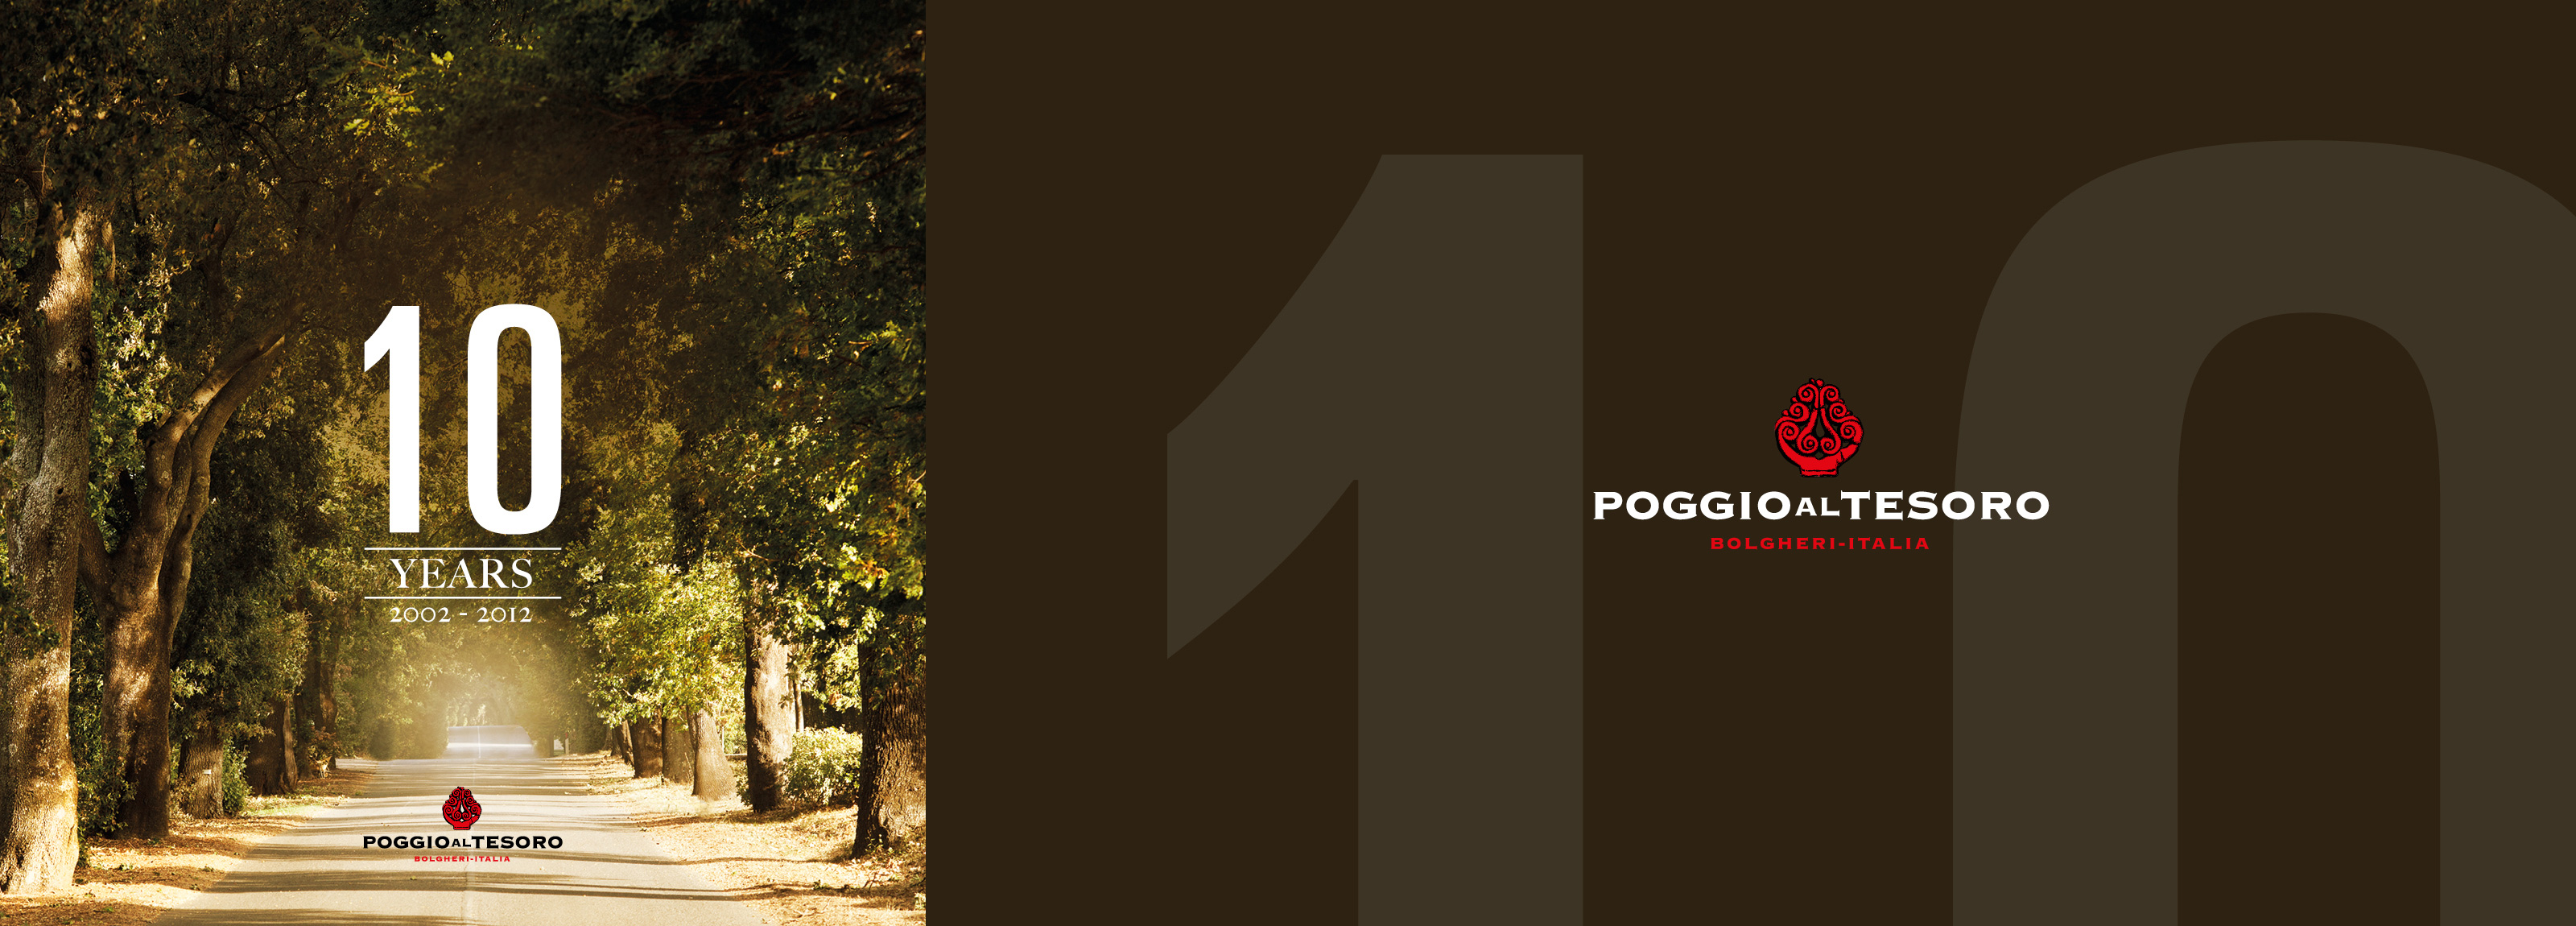 Hangar Design Group signs the 10-years anniversary campaign for Poggio al Tesoro